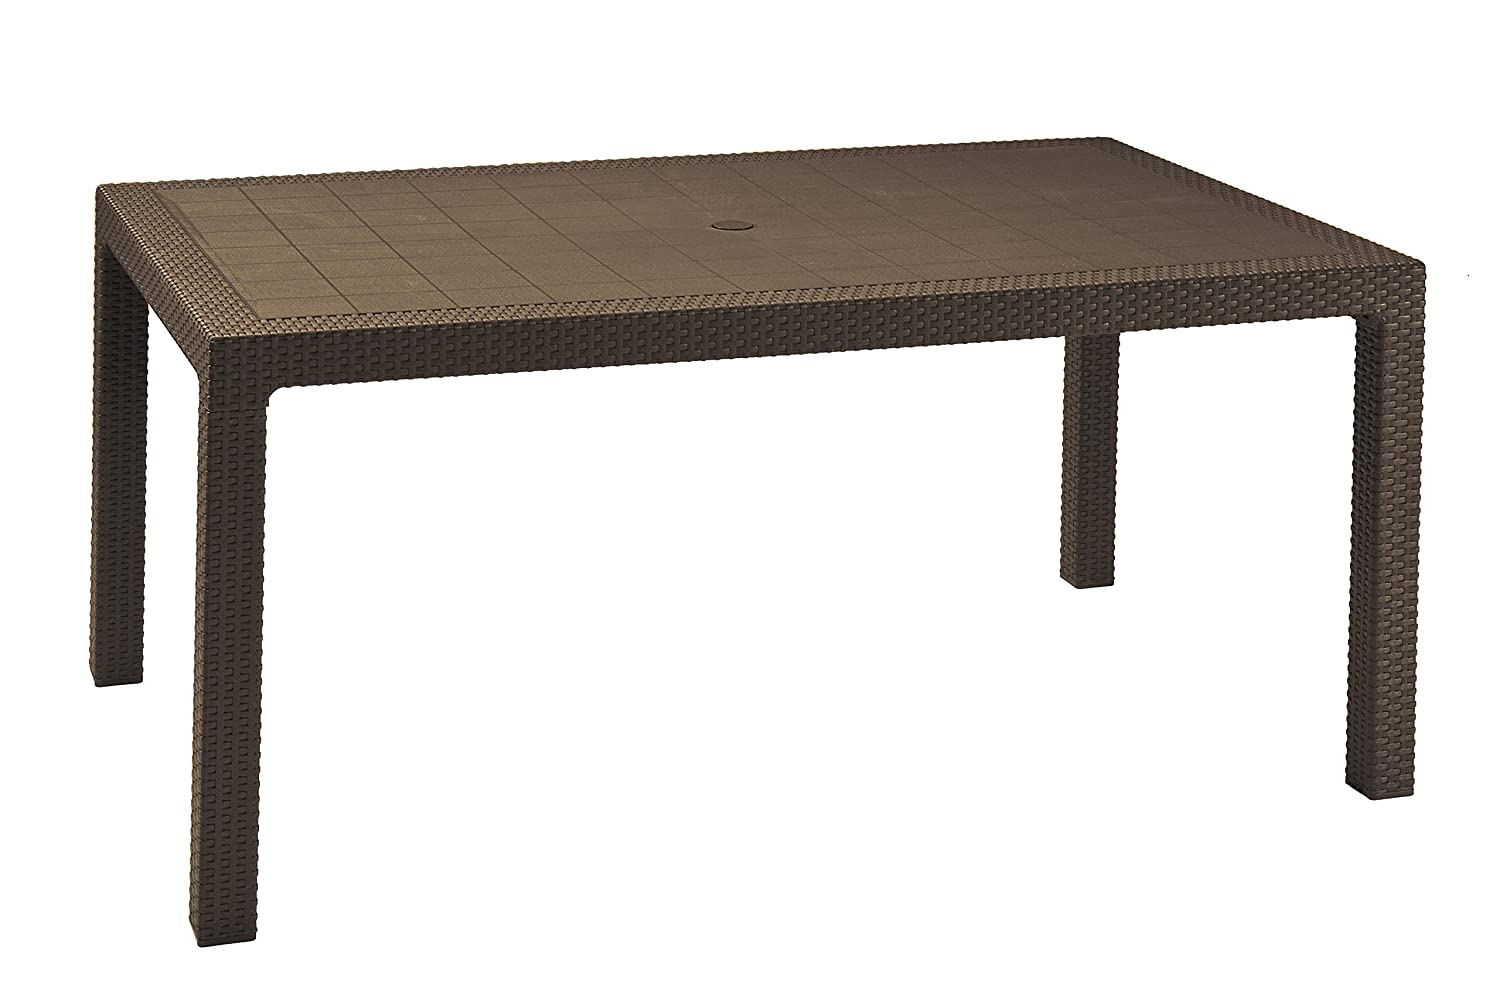 Keter Melody Outdoor Dining Table - Graphite 17190205